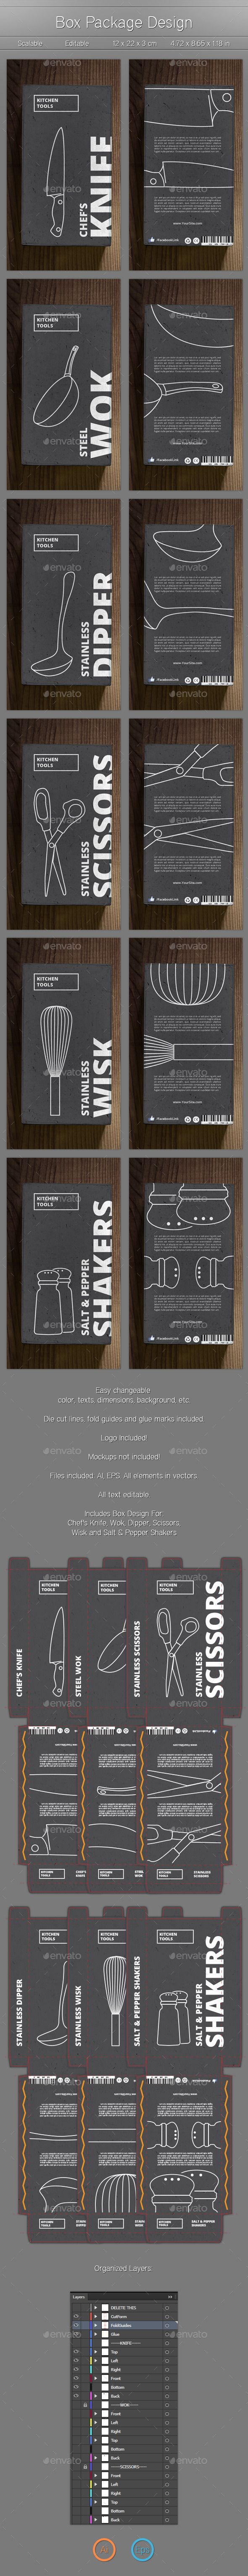 Product Box Design - Packaging Print Templates                                                                                                                                                      More